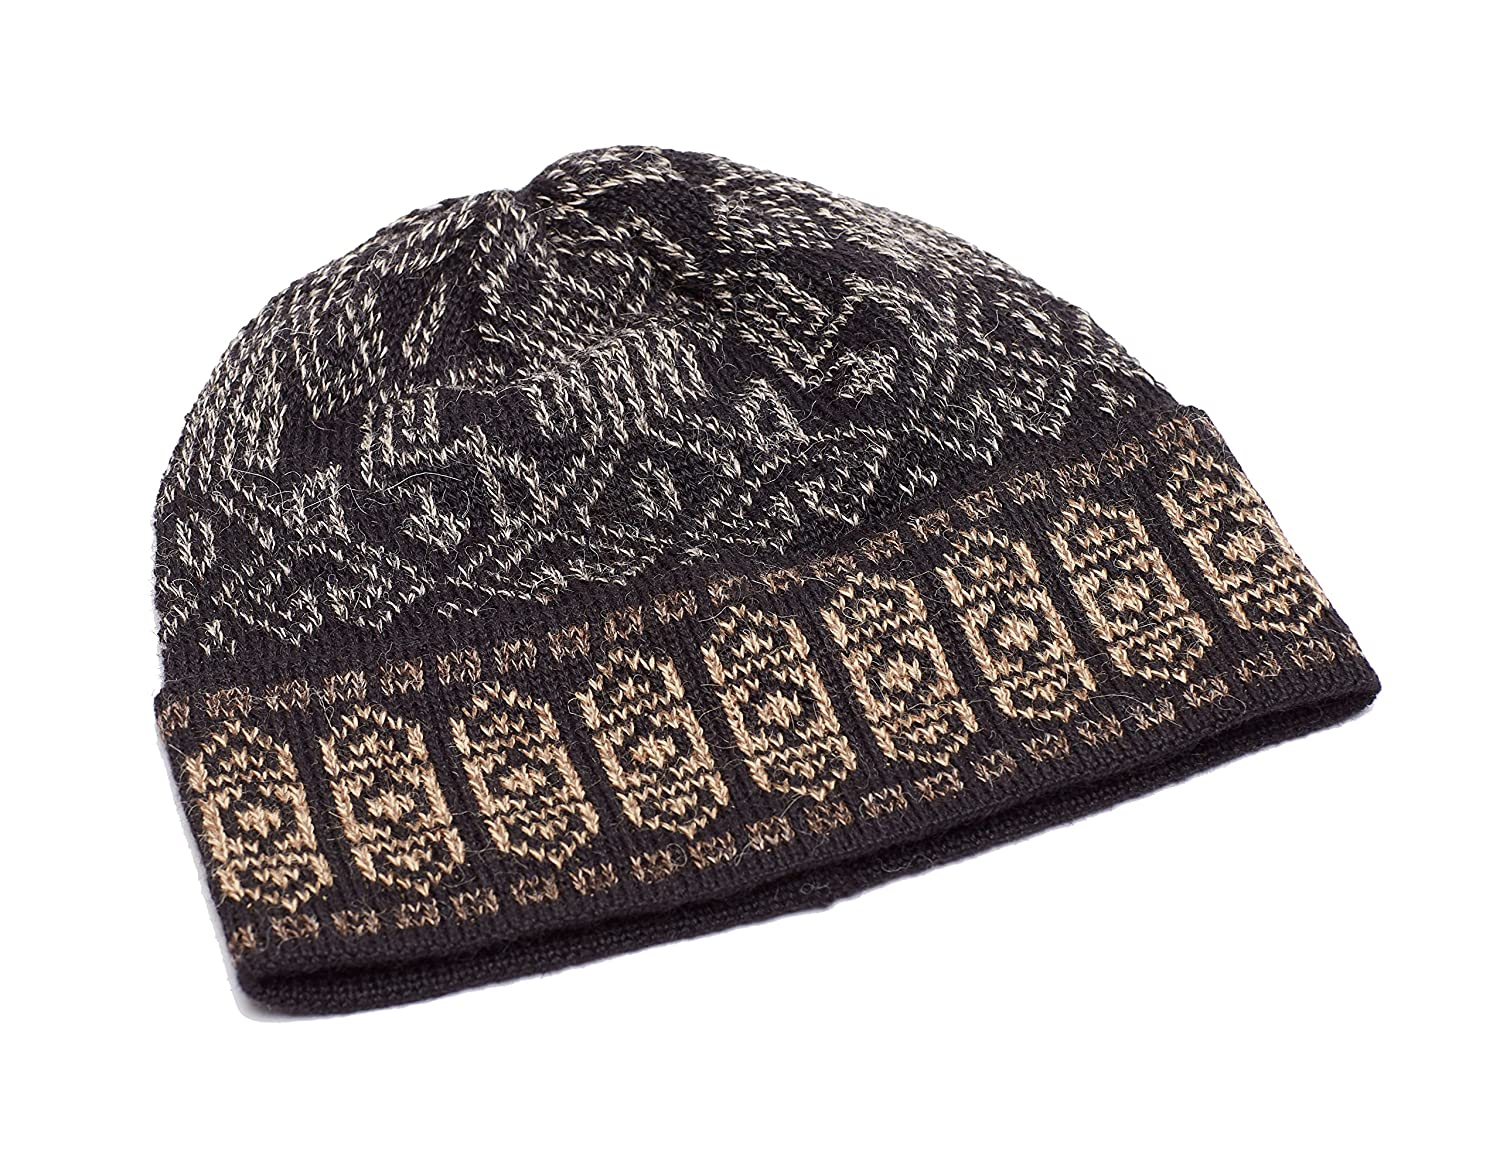 Amazon.com  Invisible World Women s 100% Alpaca Wool Hat Knit Unisex Beanie  Graffiti  Clothing c3845758593